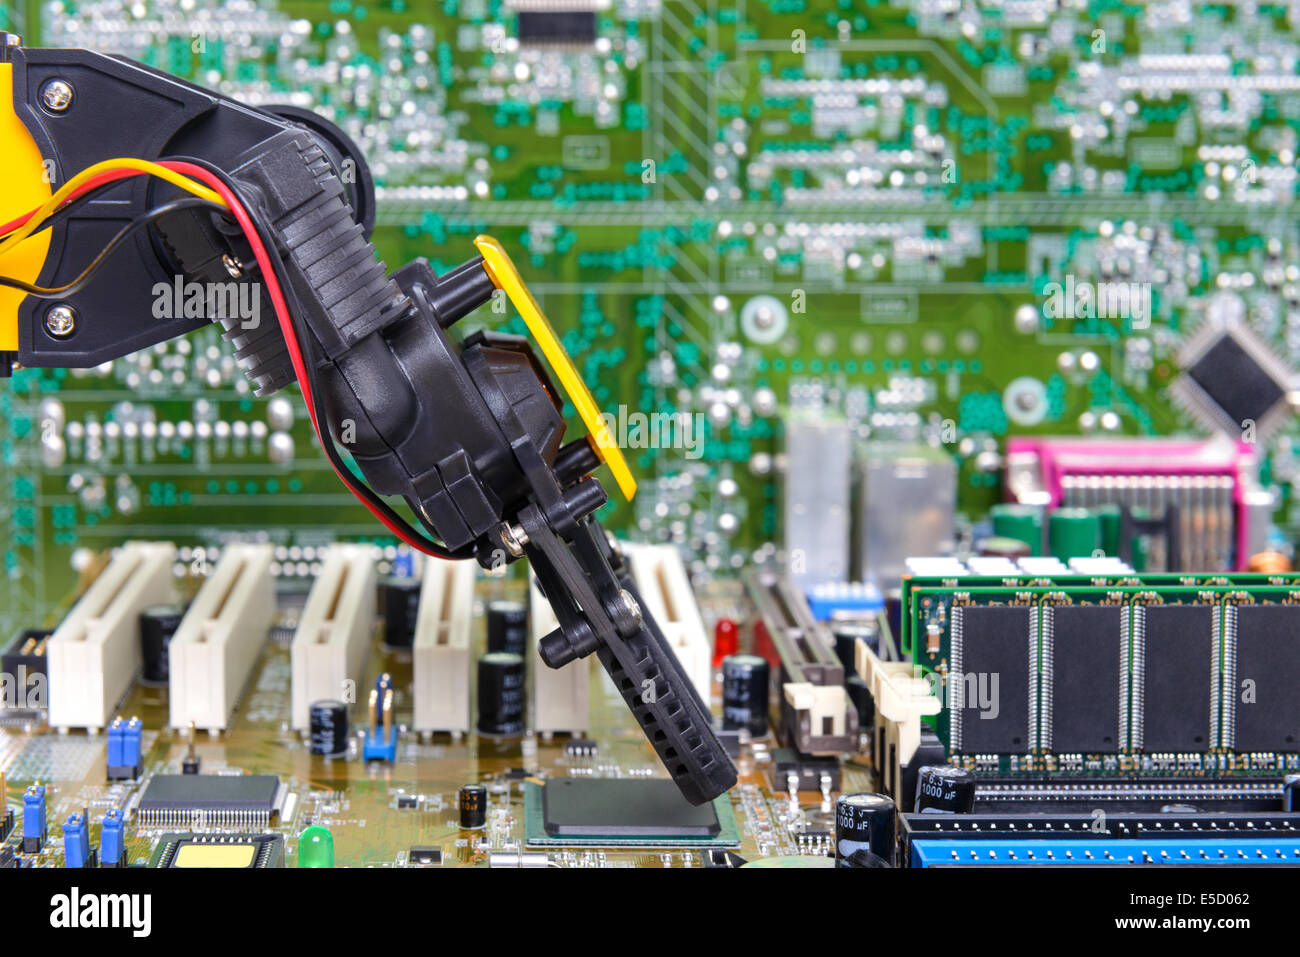 Robotic arm installing a computer chip - Stock Image